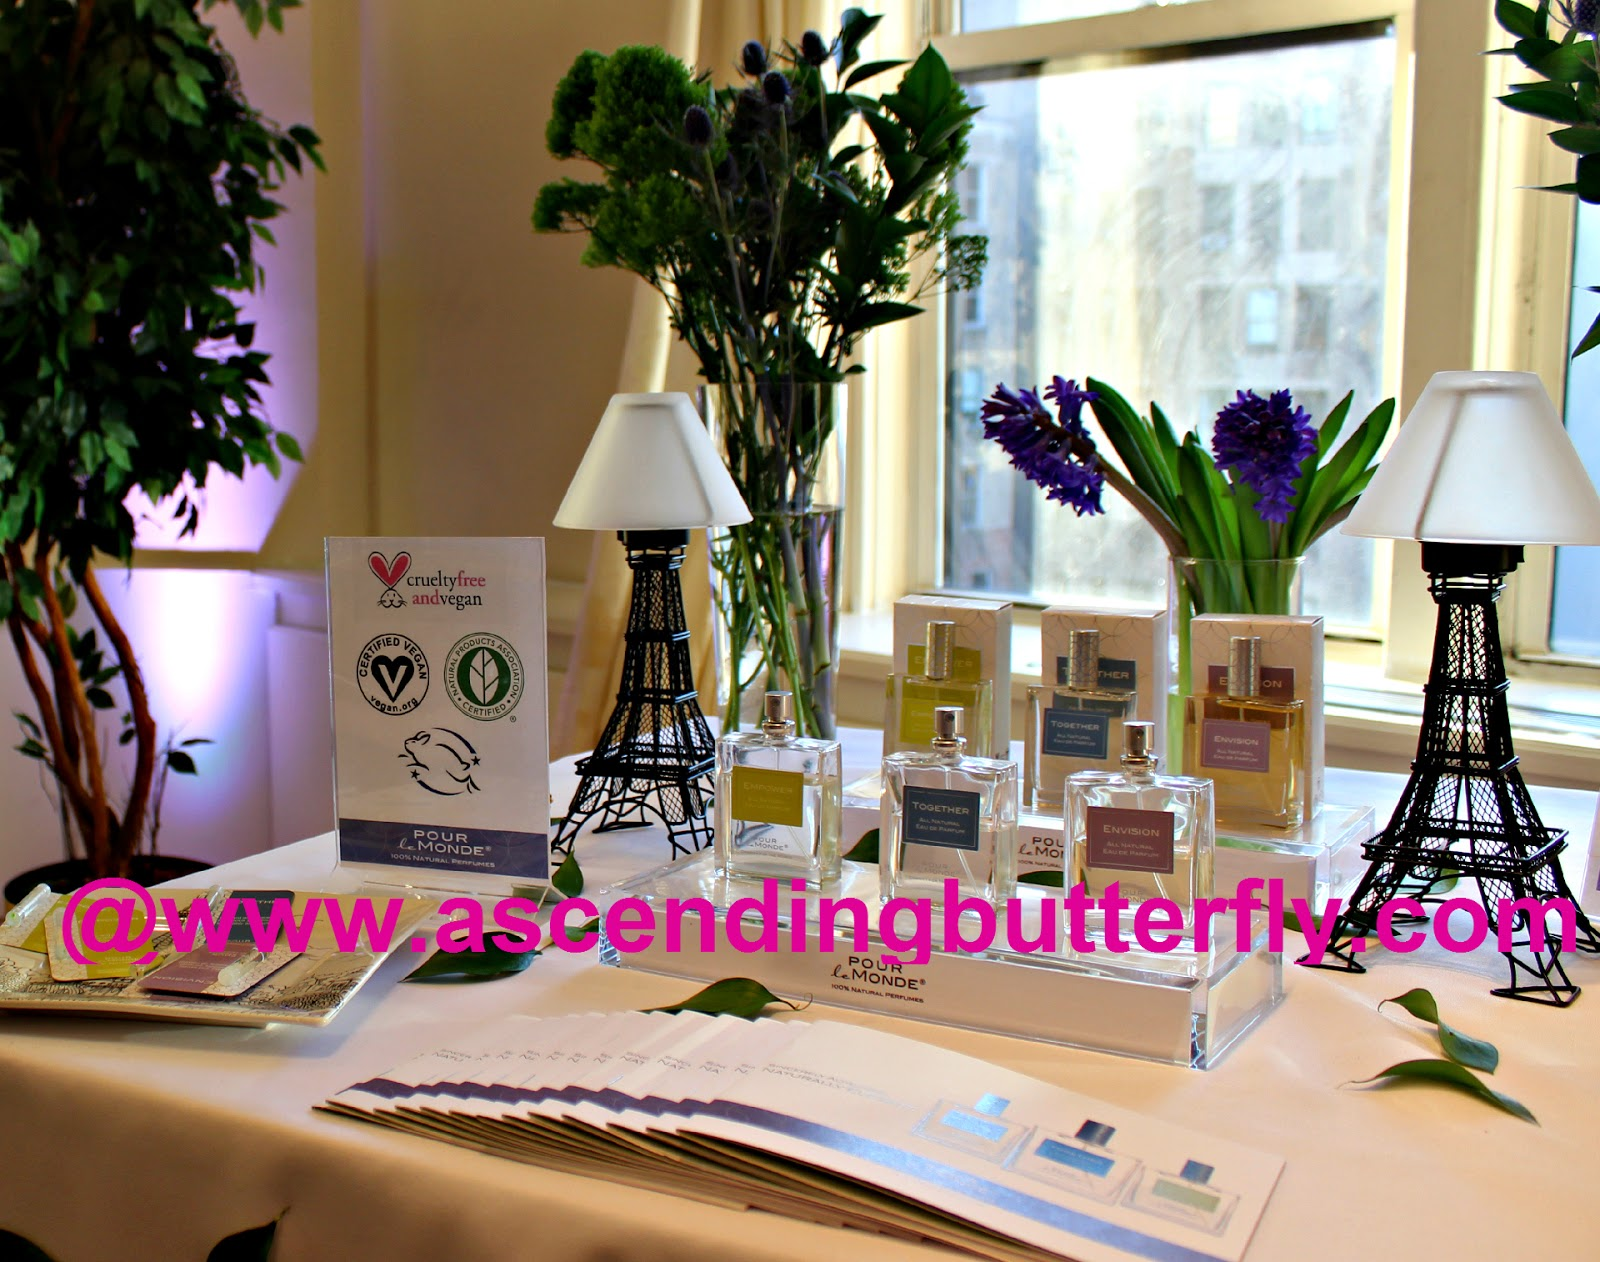 Pour le Monde Parfums at BeautyPress Spotlight Day February 2015, Certified 100% Natural Prestige Fragrance